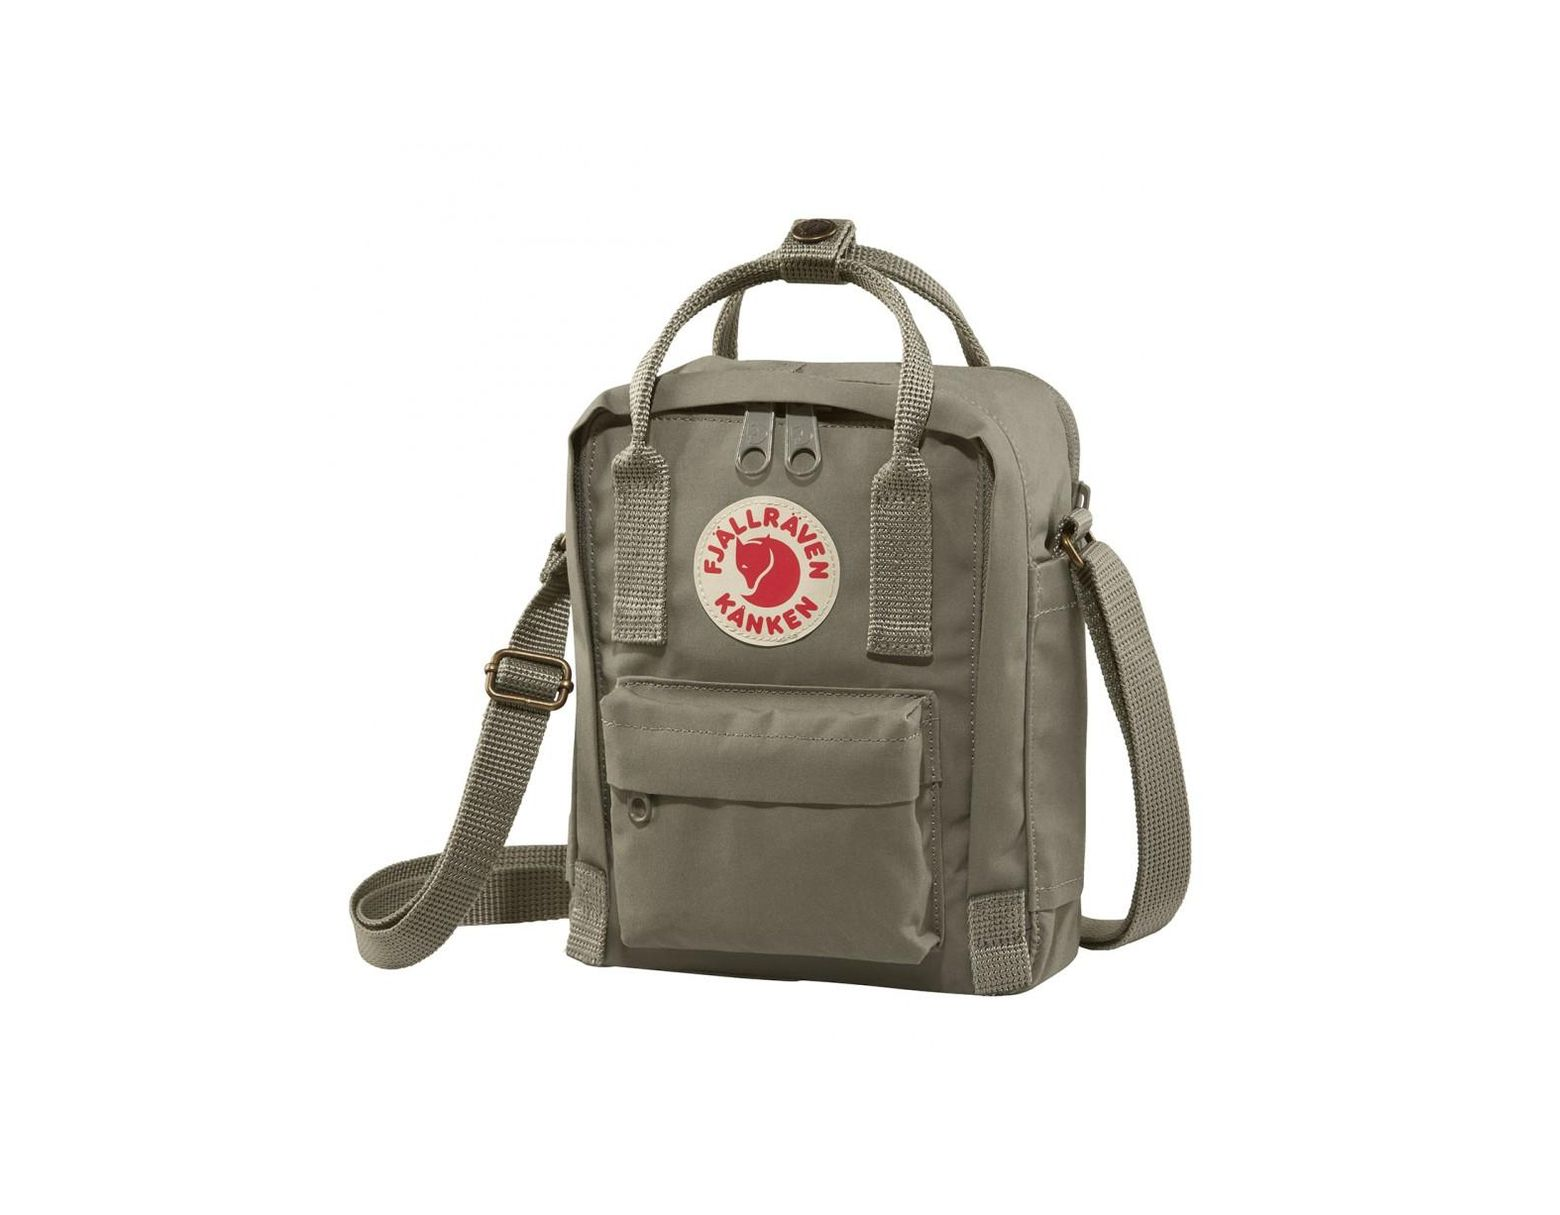 68b0cb860 Fjallraven Fjallraven Kanken Sling Cross Body Bag Fog Pre-order for Men -  Lyst